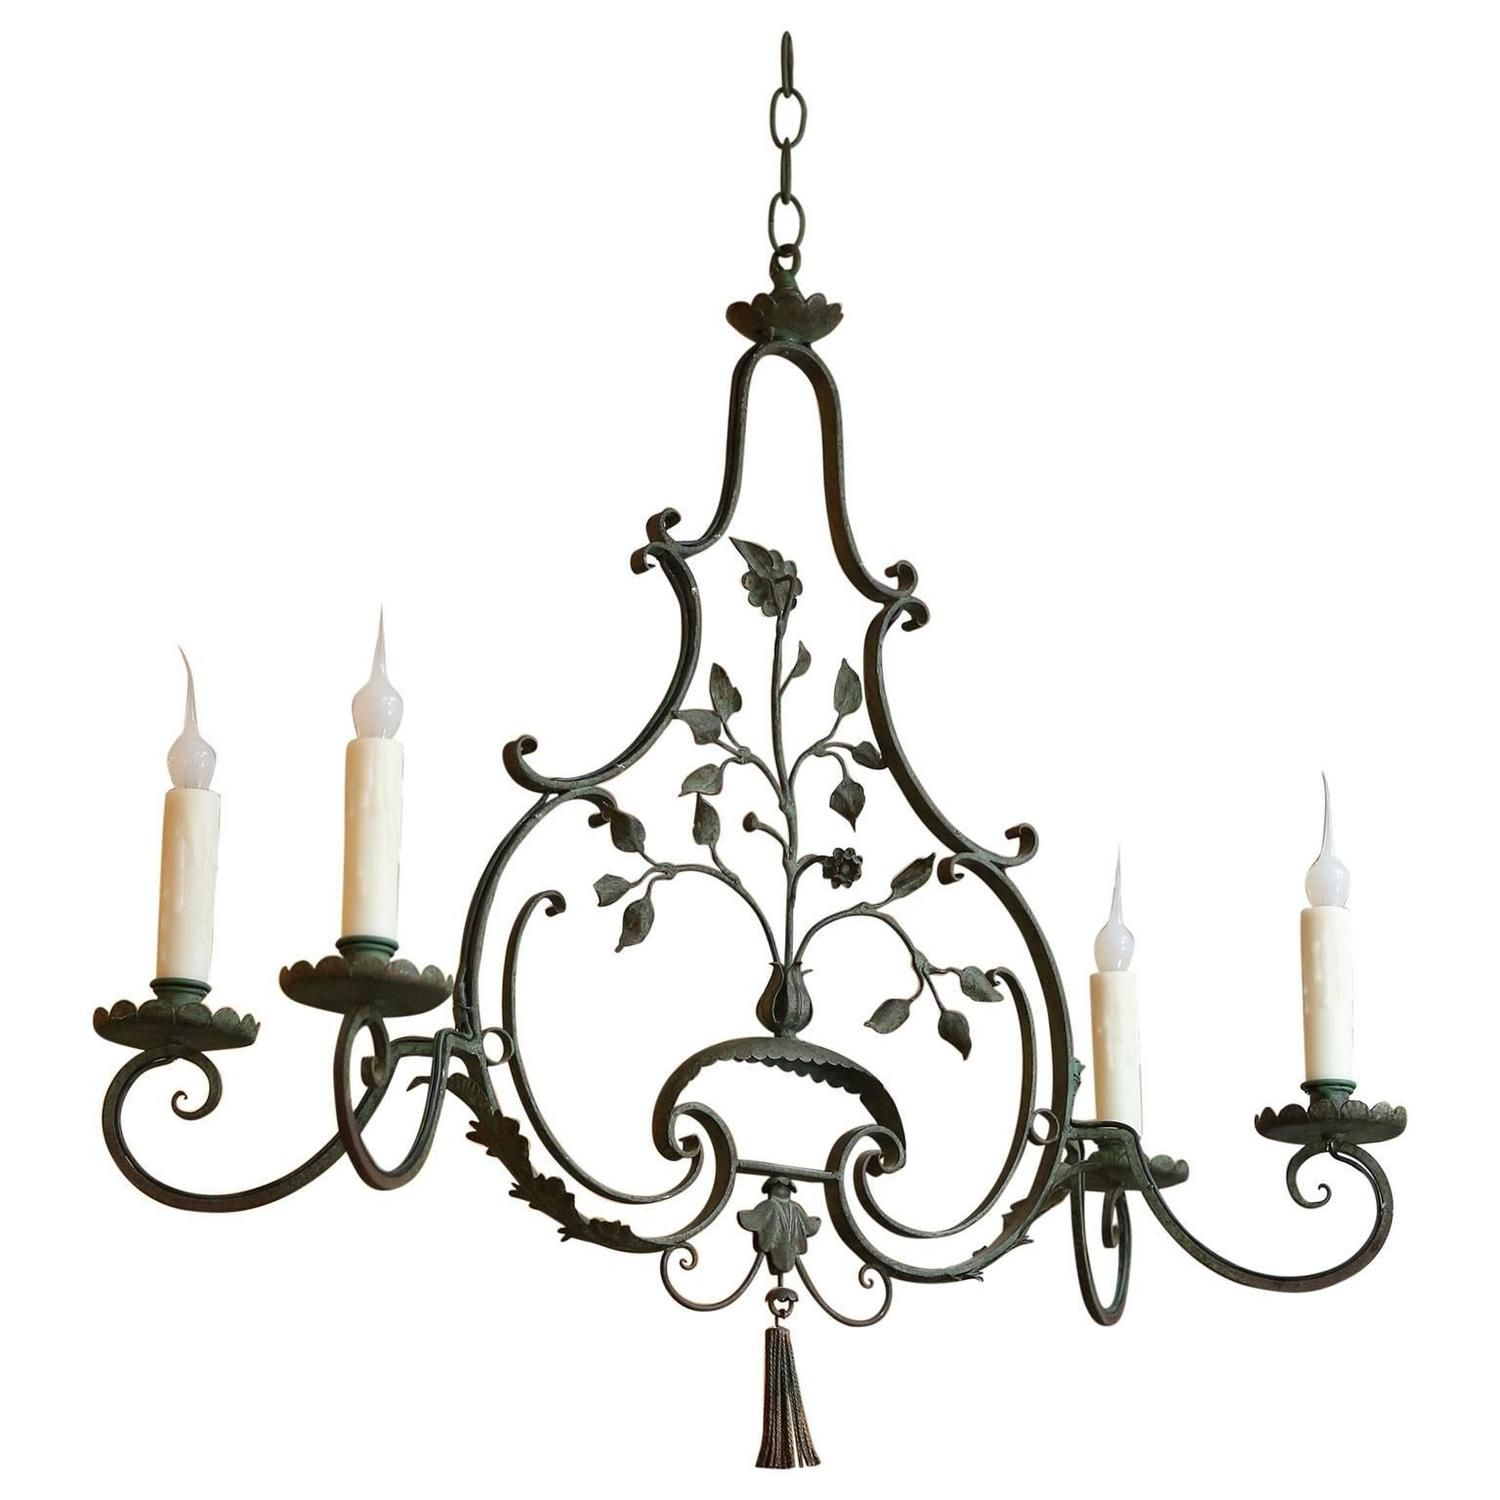 French wrought iron green painted four arm chandelier wrought iron french wrought iron green painted four arm chandelier 1stdibs aloadofball Image collections